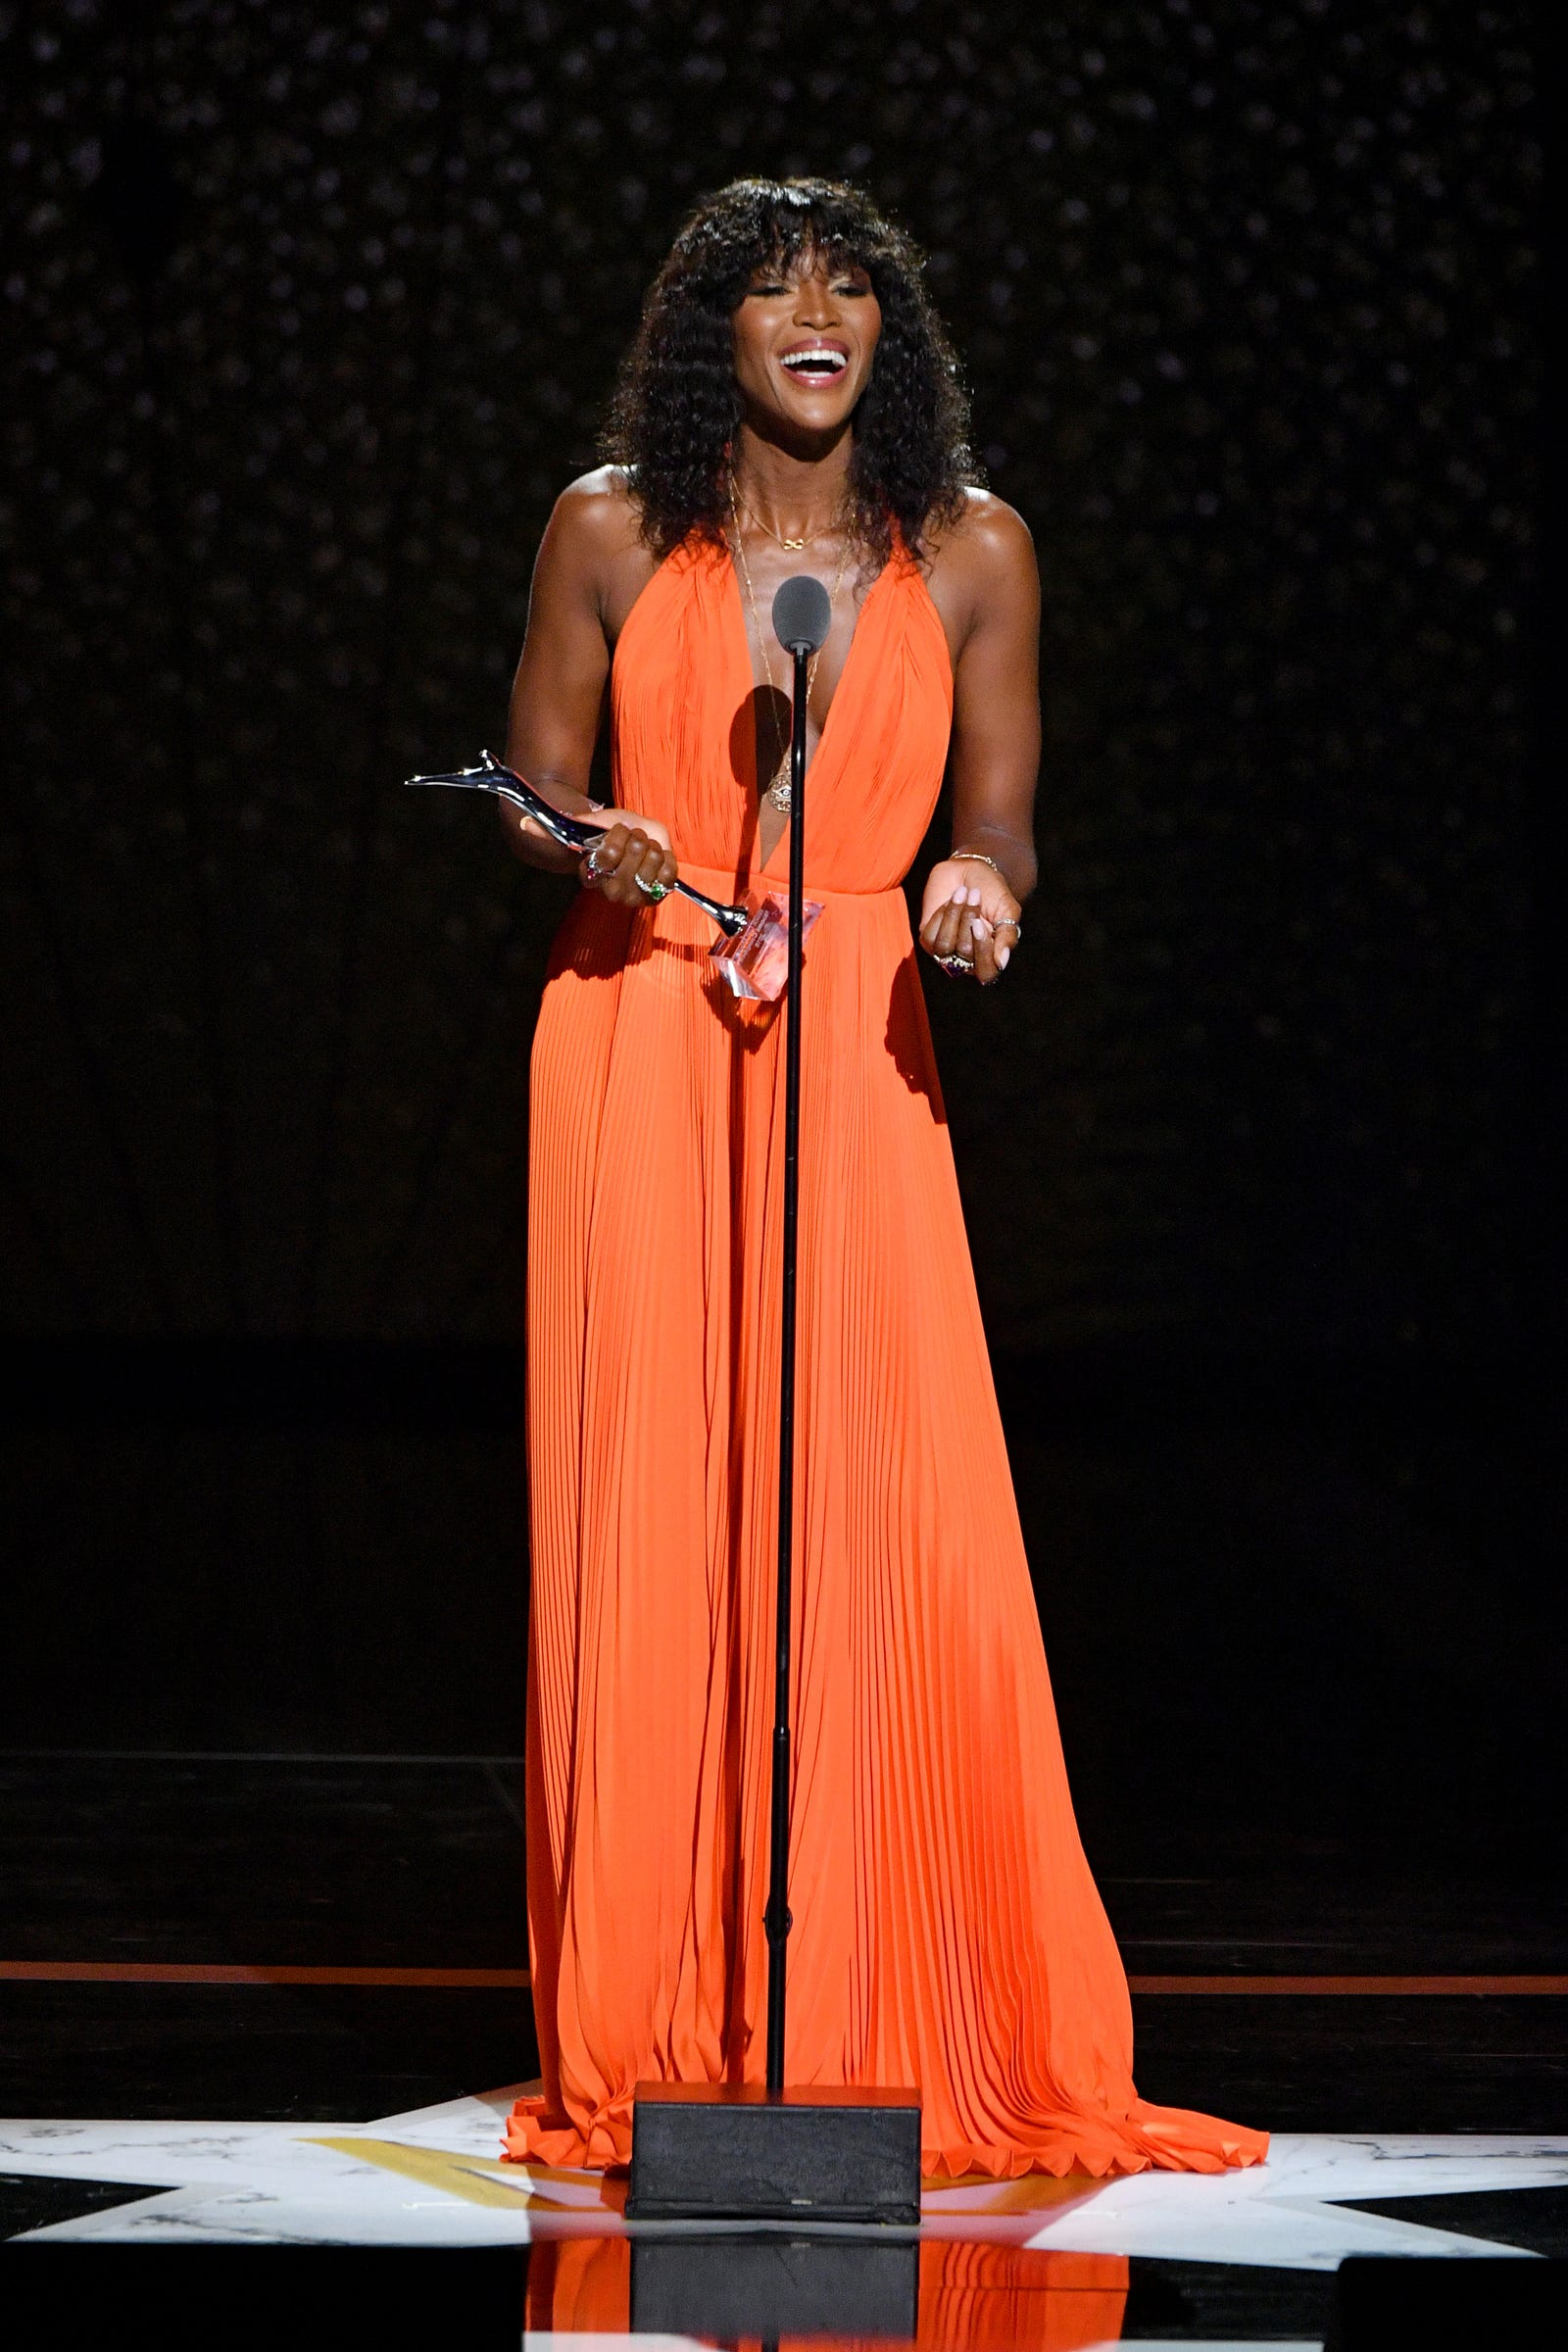 Honoree Naomi Campbell speaks onstage during the Black Girls Rock! 2018 Show at NJPAC on August 26, 2018 in Newark, New Jersey.